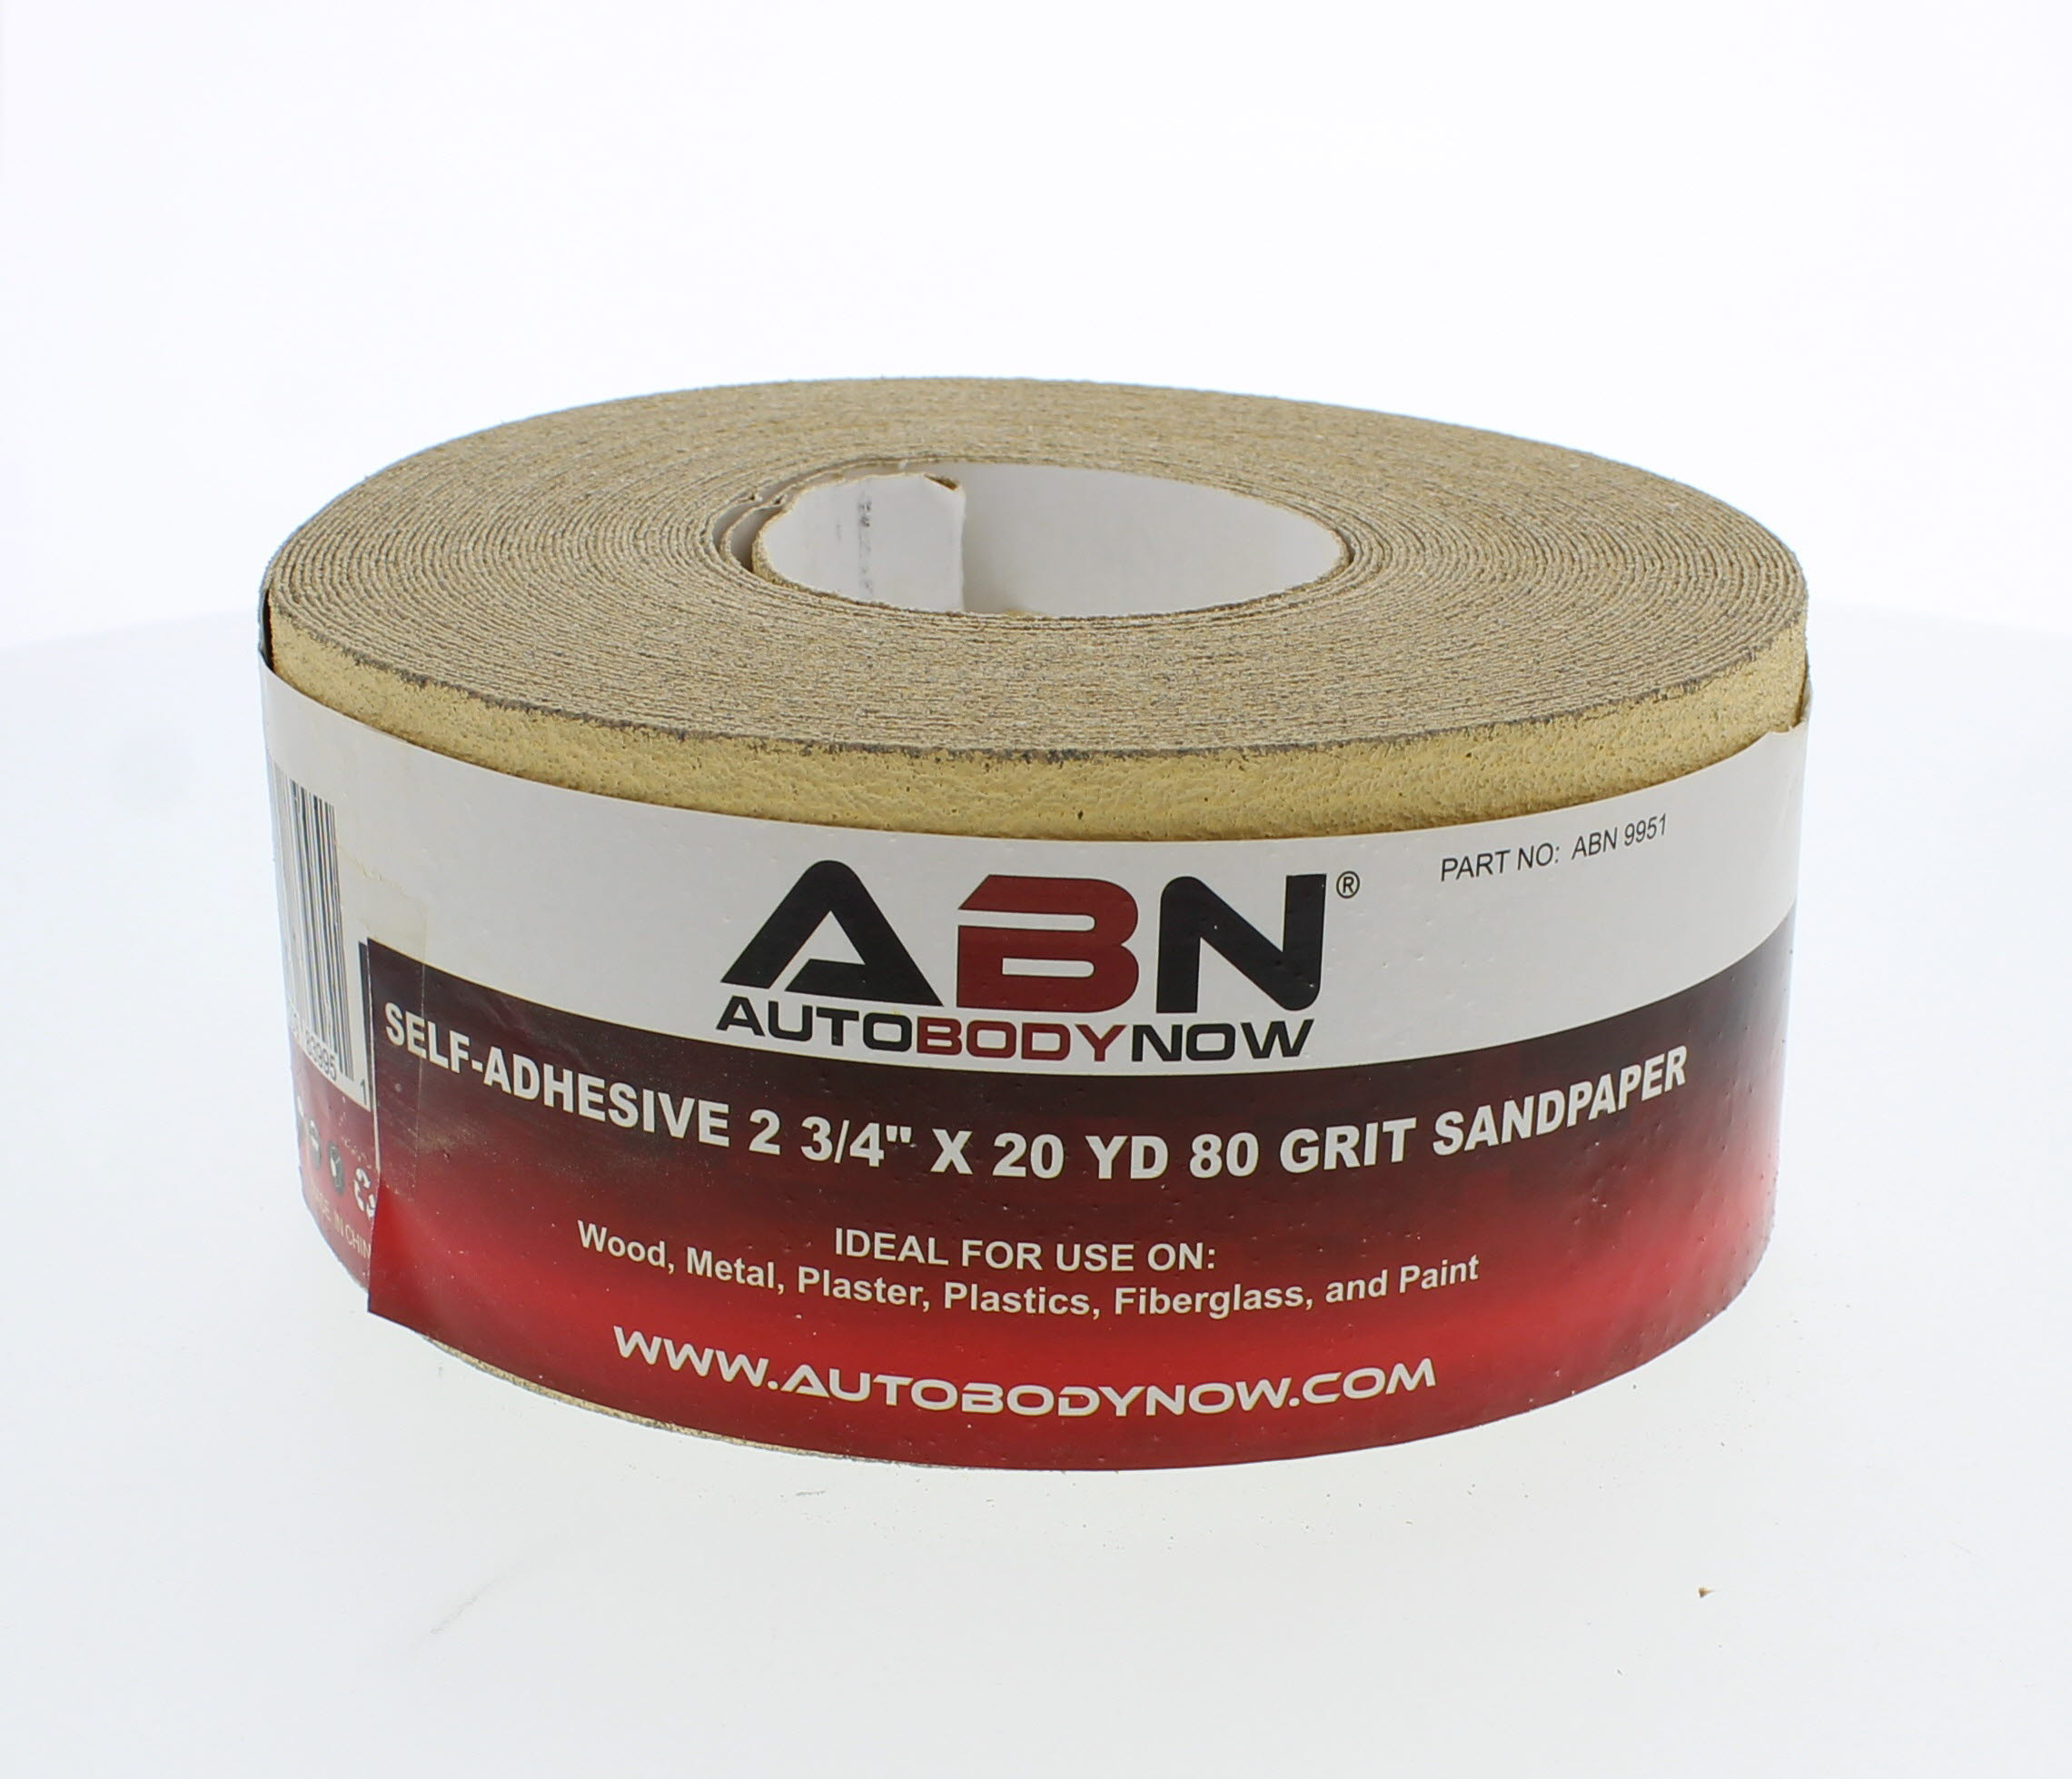 ABN-Adhesive-Sandpaper-Roll-2-3-4-Inch-x-20-Yards-Aluminum-Oxide-PSA thumbnail 40